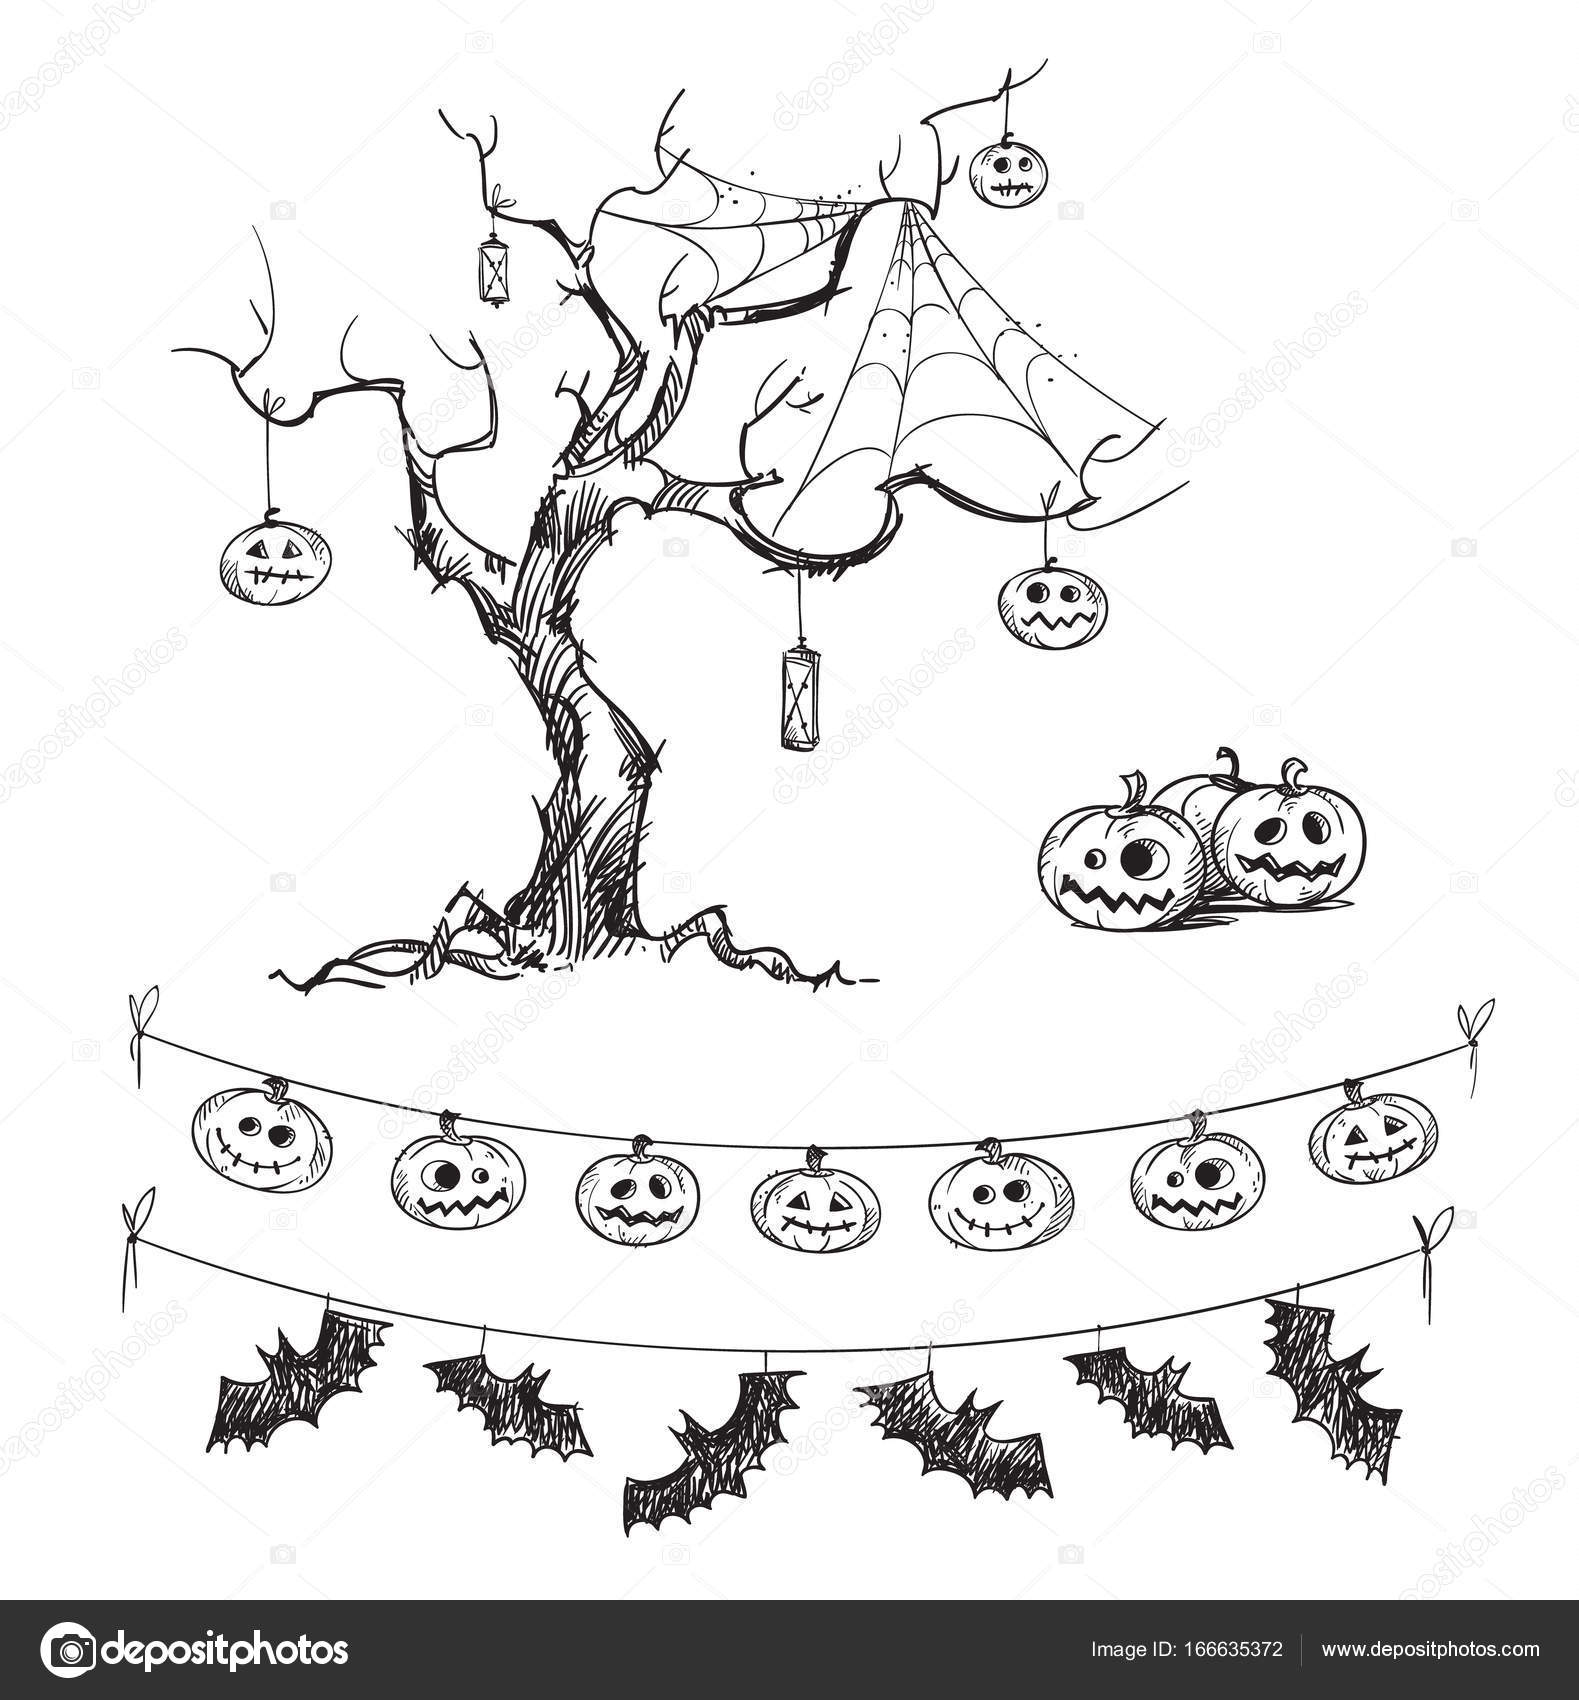 halloween drawings. carved pumpkins, lanterns, flags. — stock vector